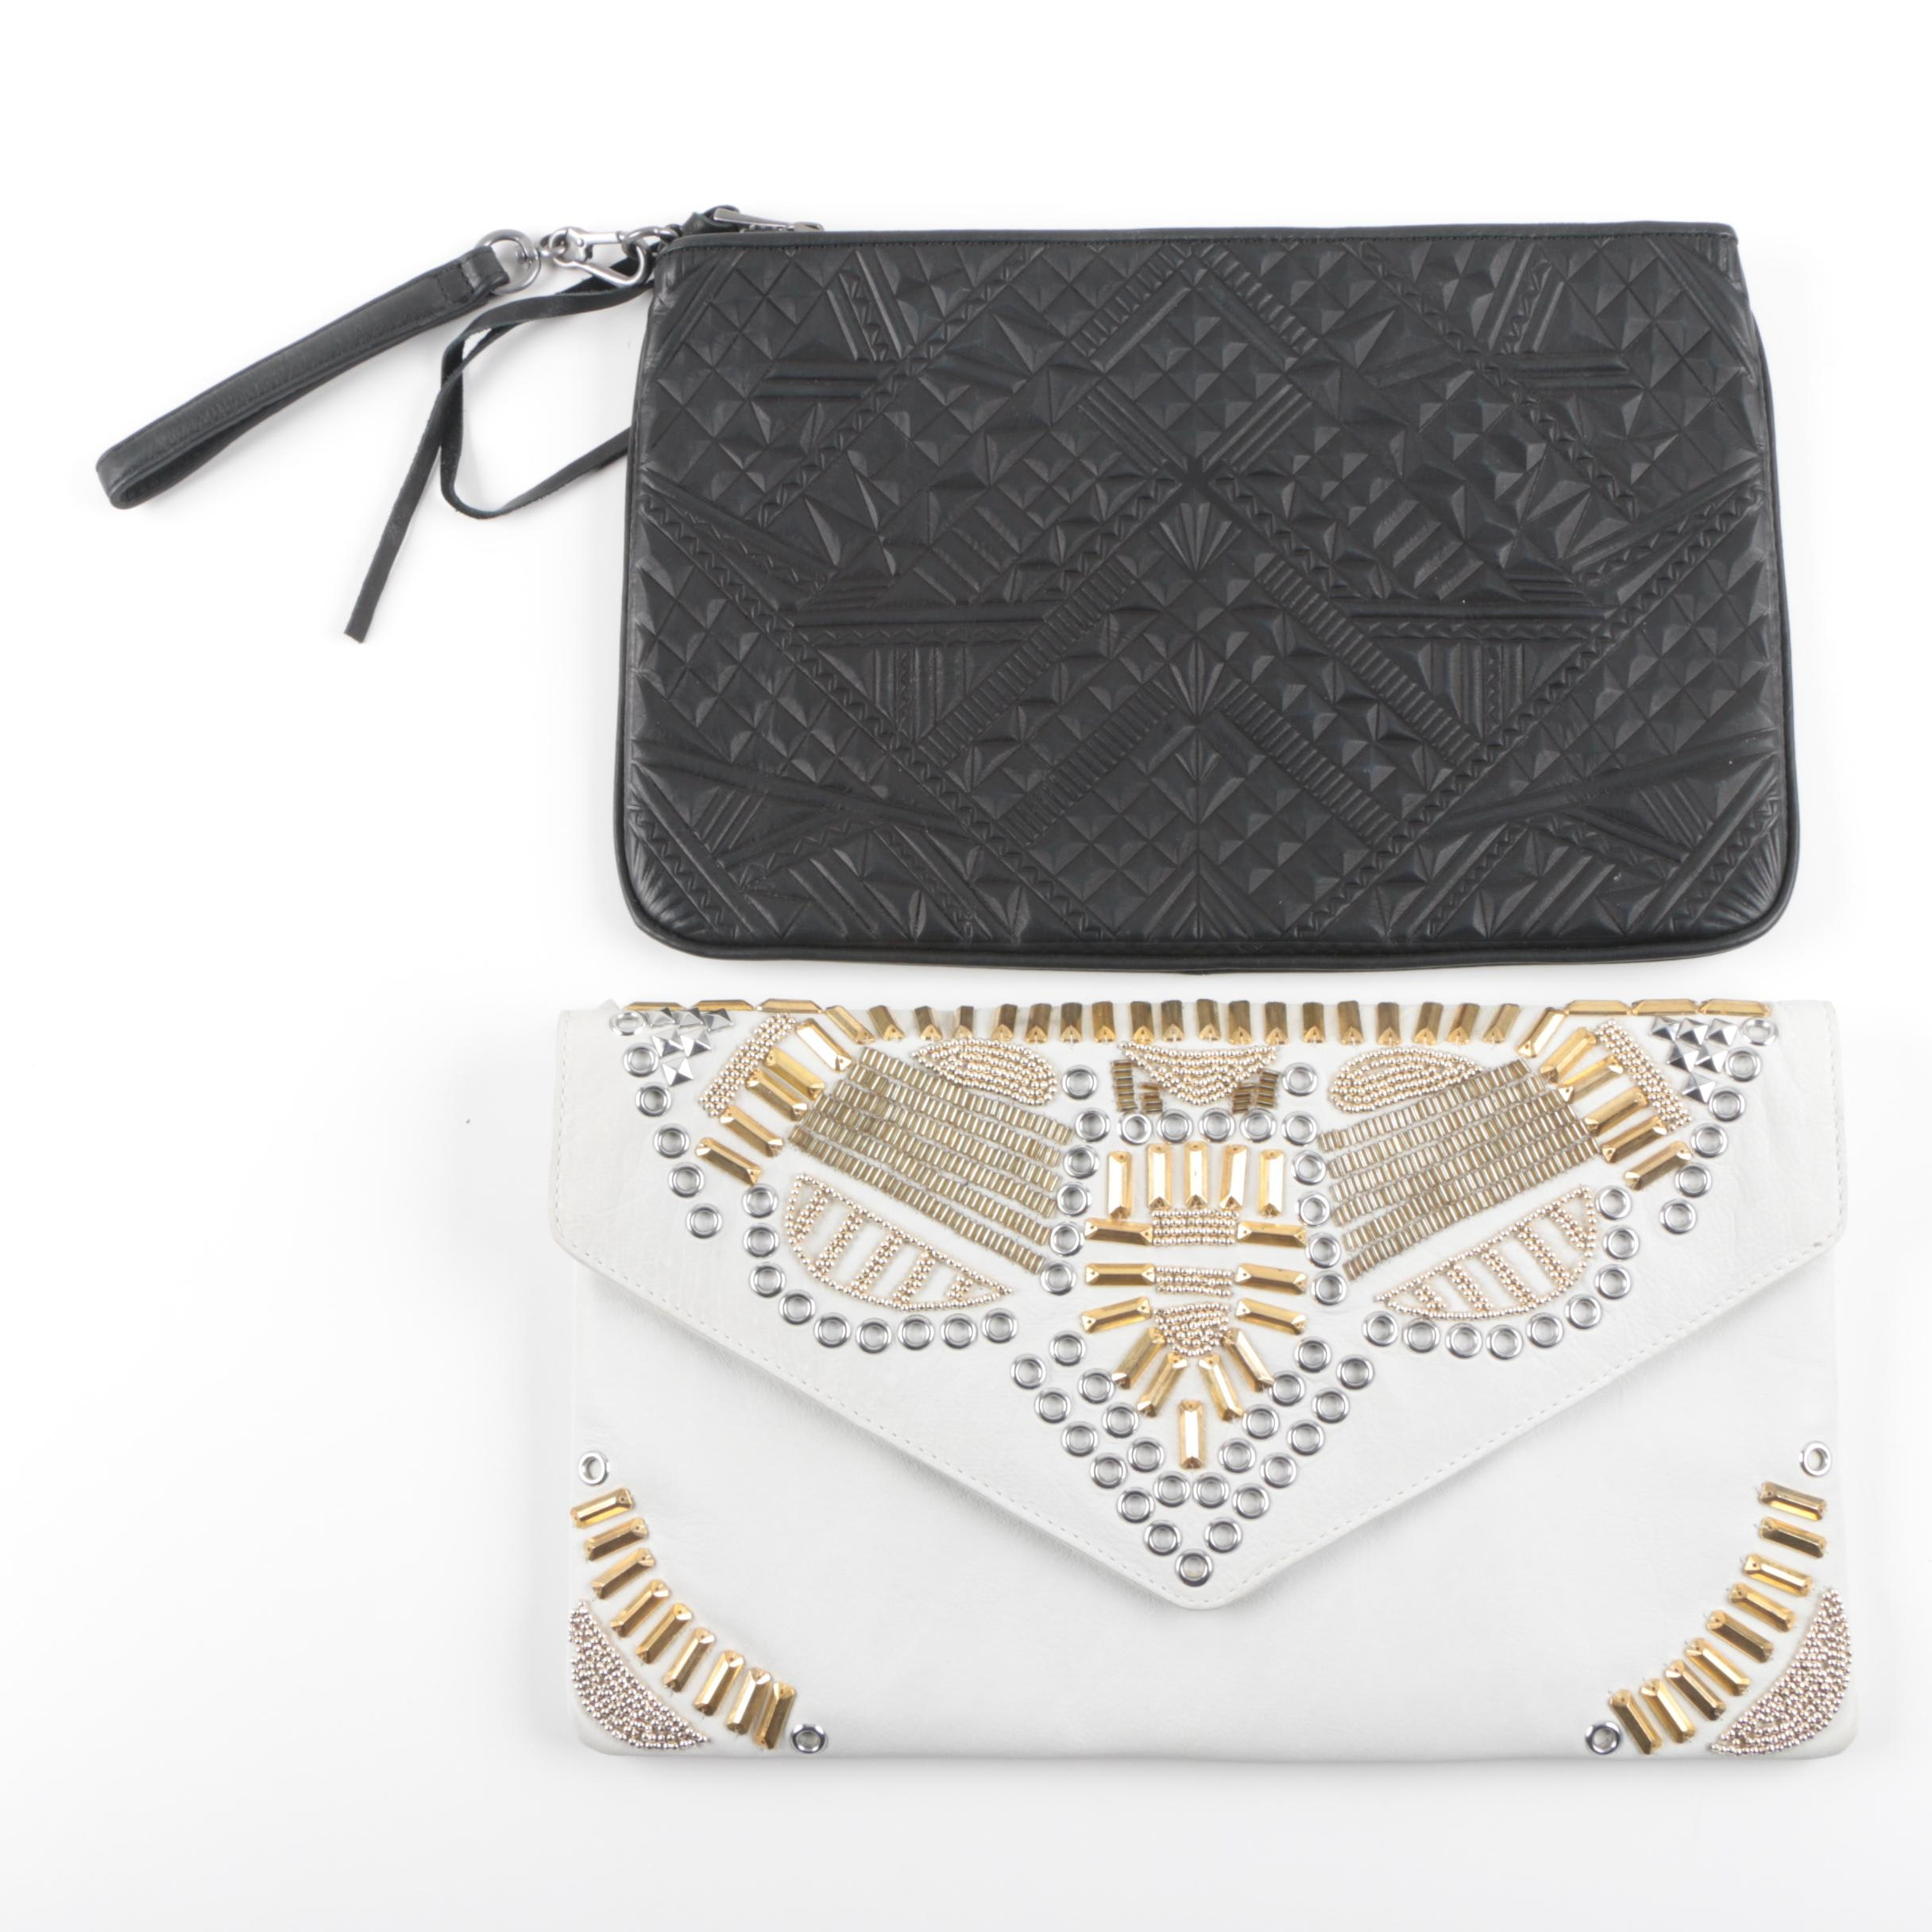 ASH Embellished and Embossed Leather Clutches